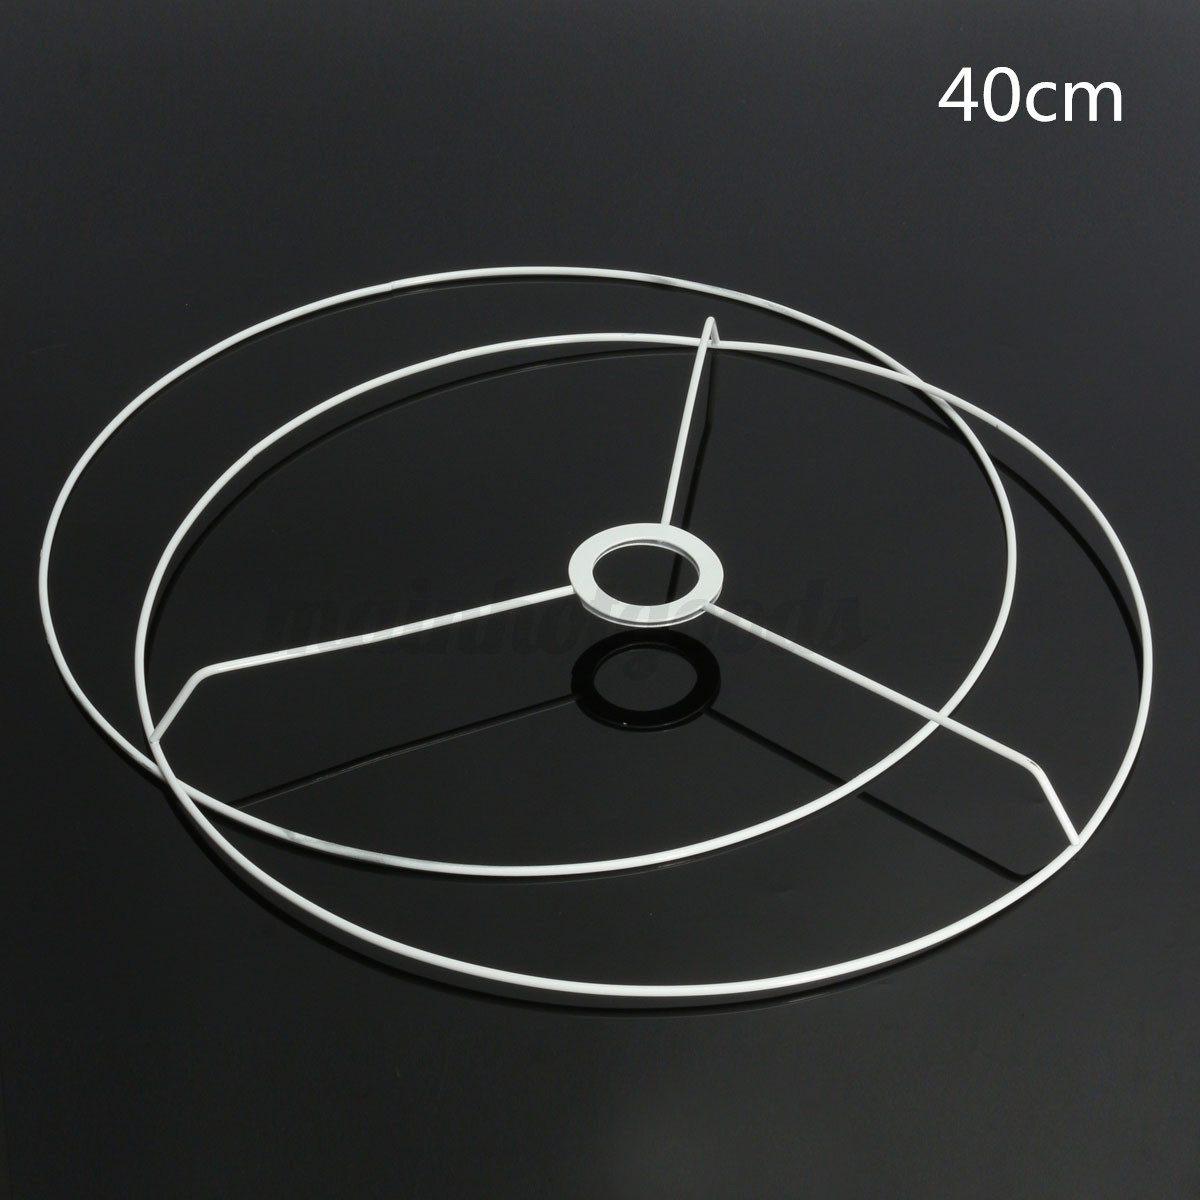 Lampshade frame ebay uk circular lampshade frame ring lamp light shade diy making kit 95 40cm dia keyboard keysfo Image collections